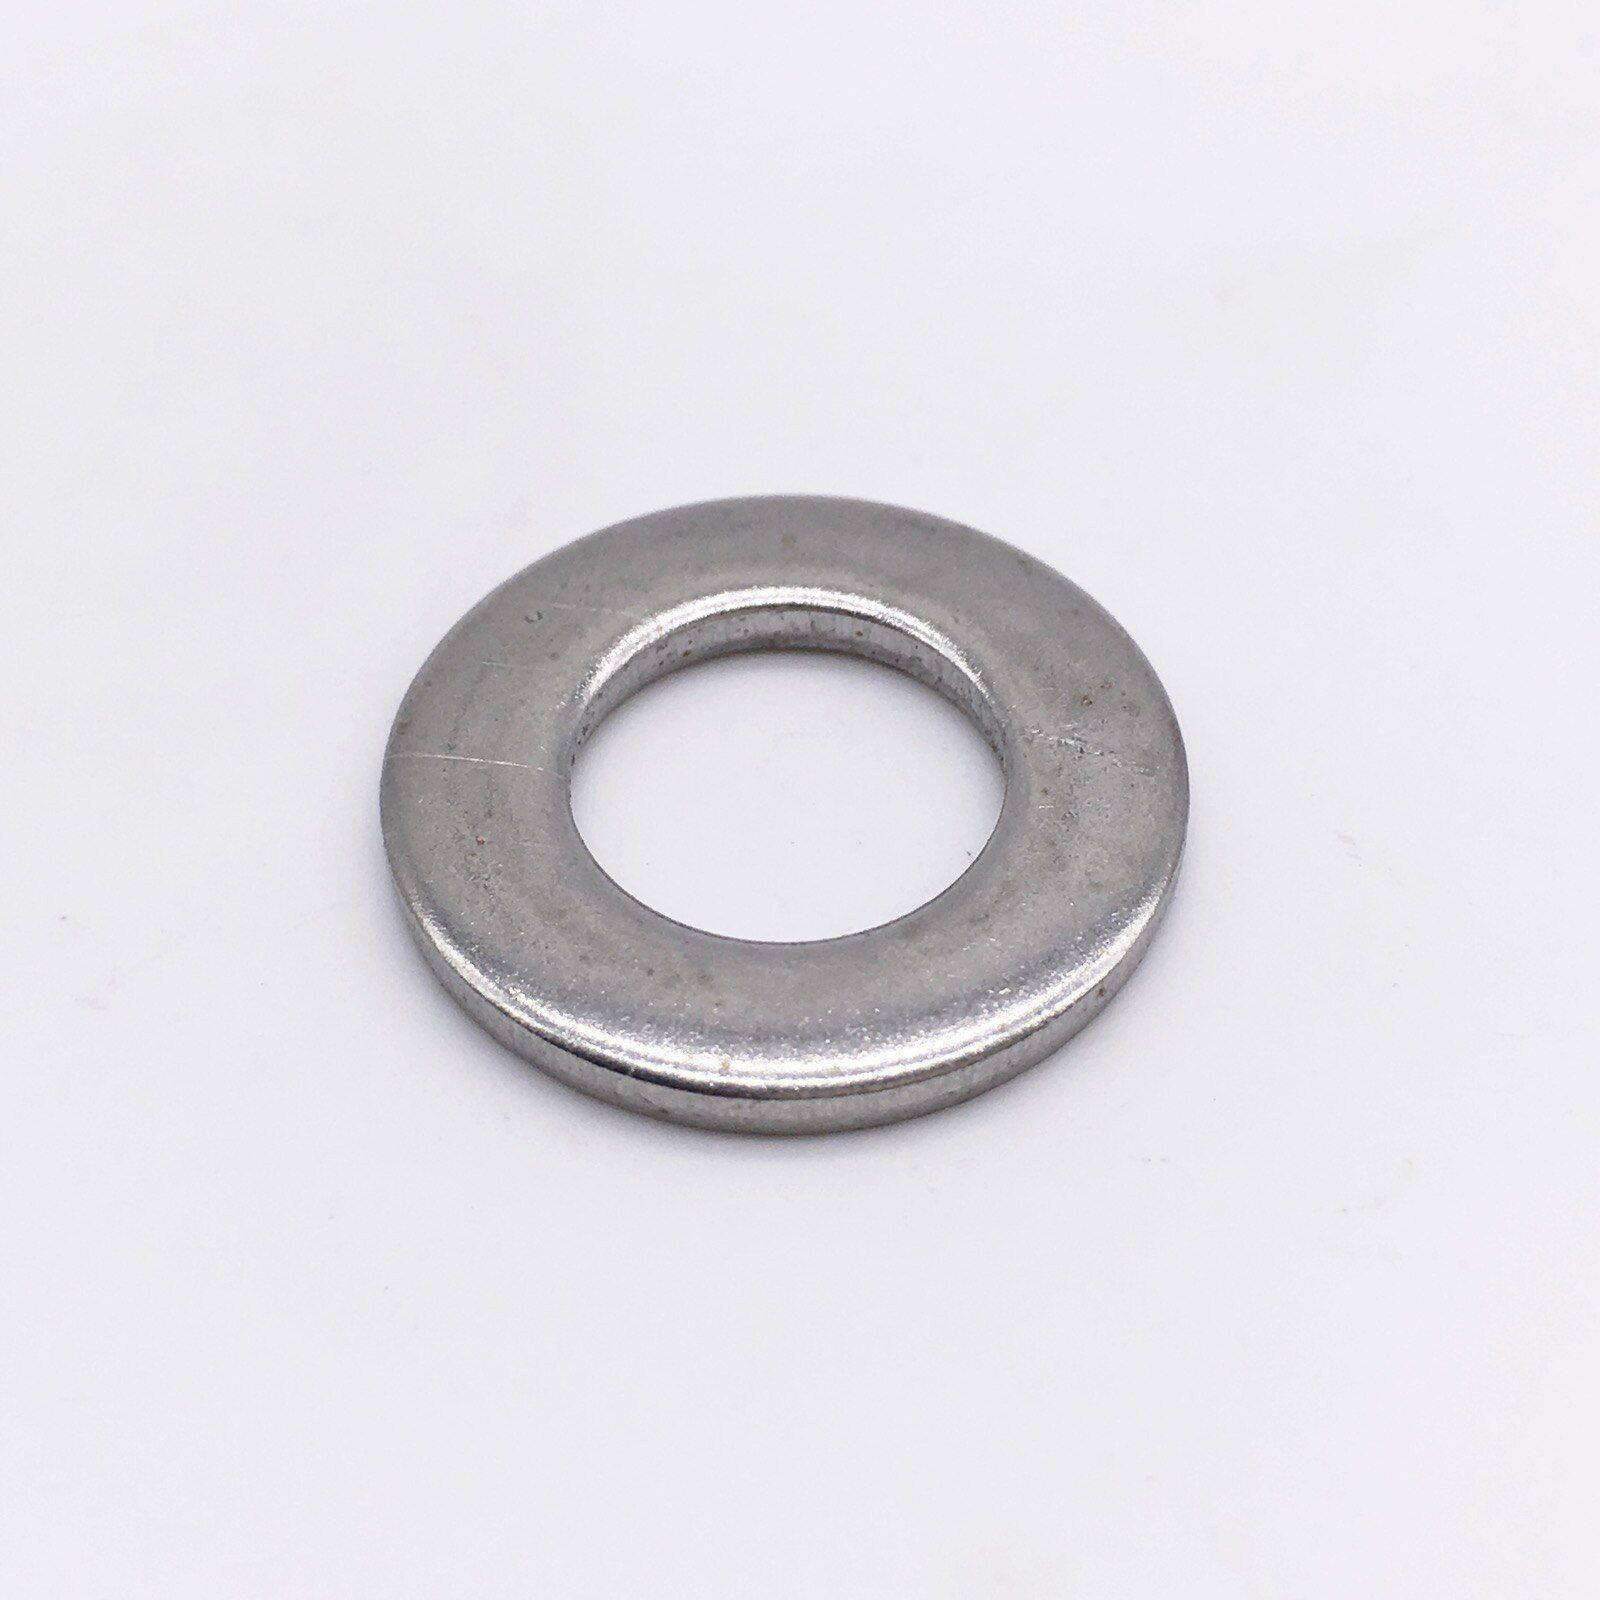 M2 Flat washer DIN125A SUS 304 A2 stainless steel washers gaskets 5000 pieces